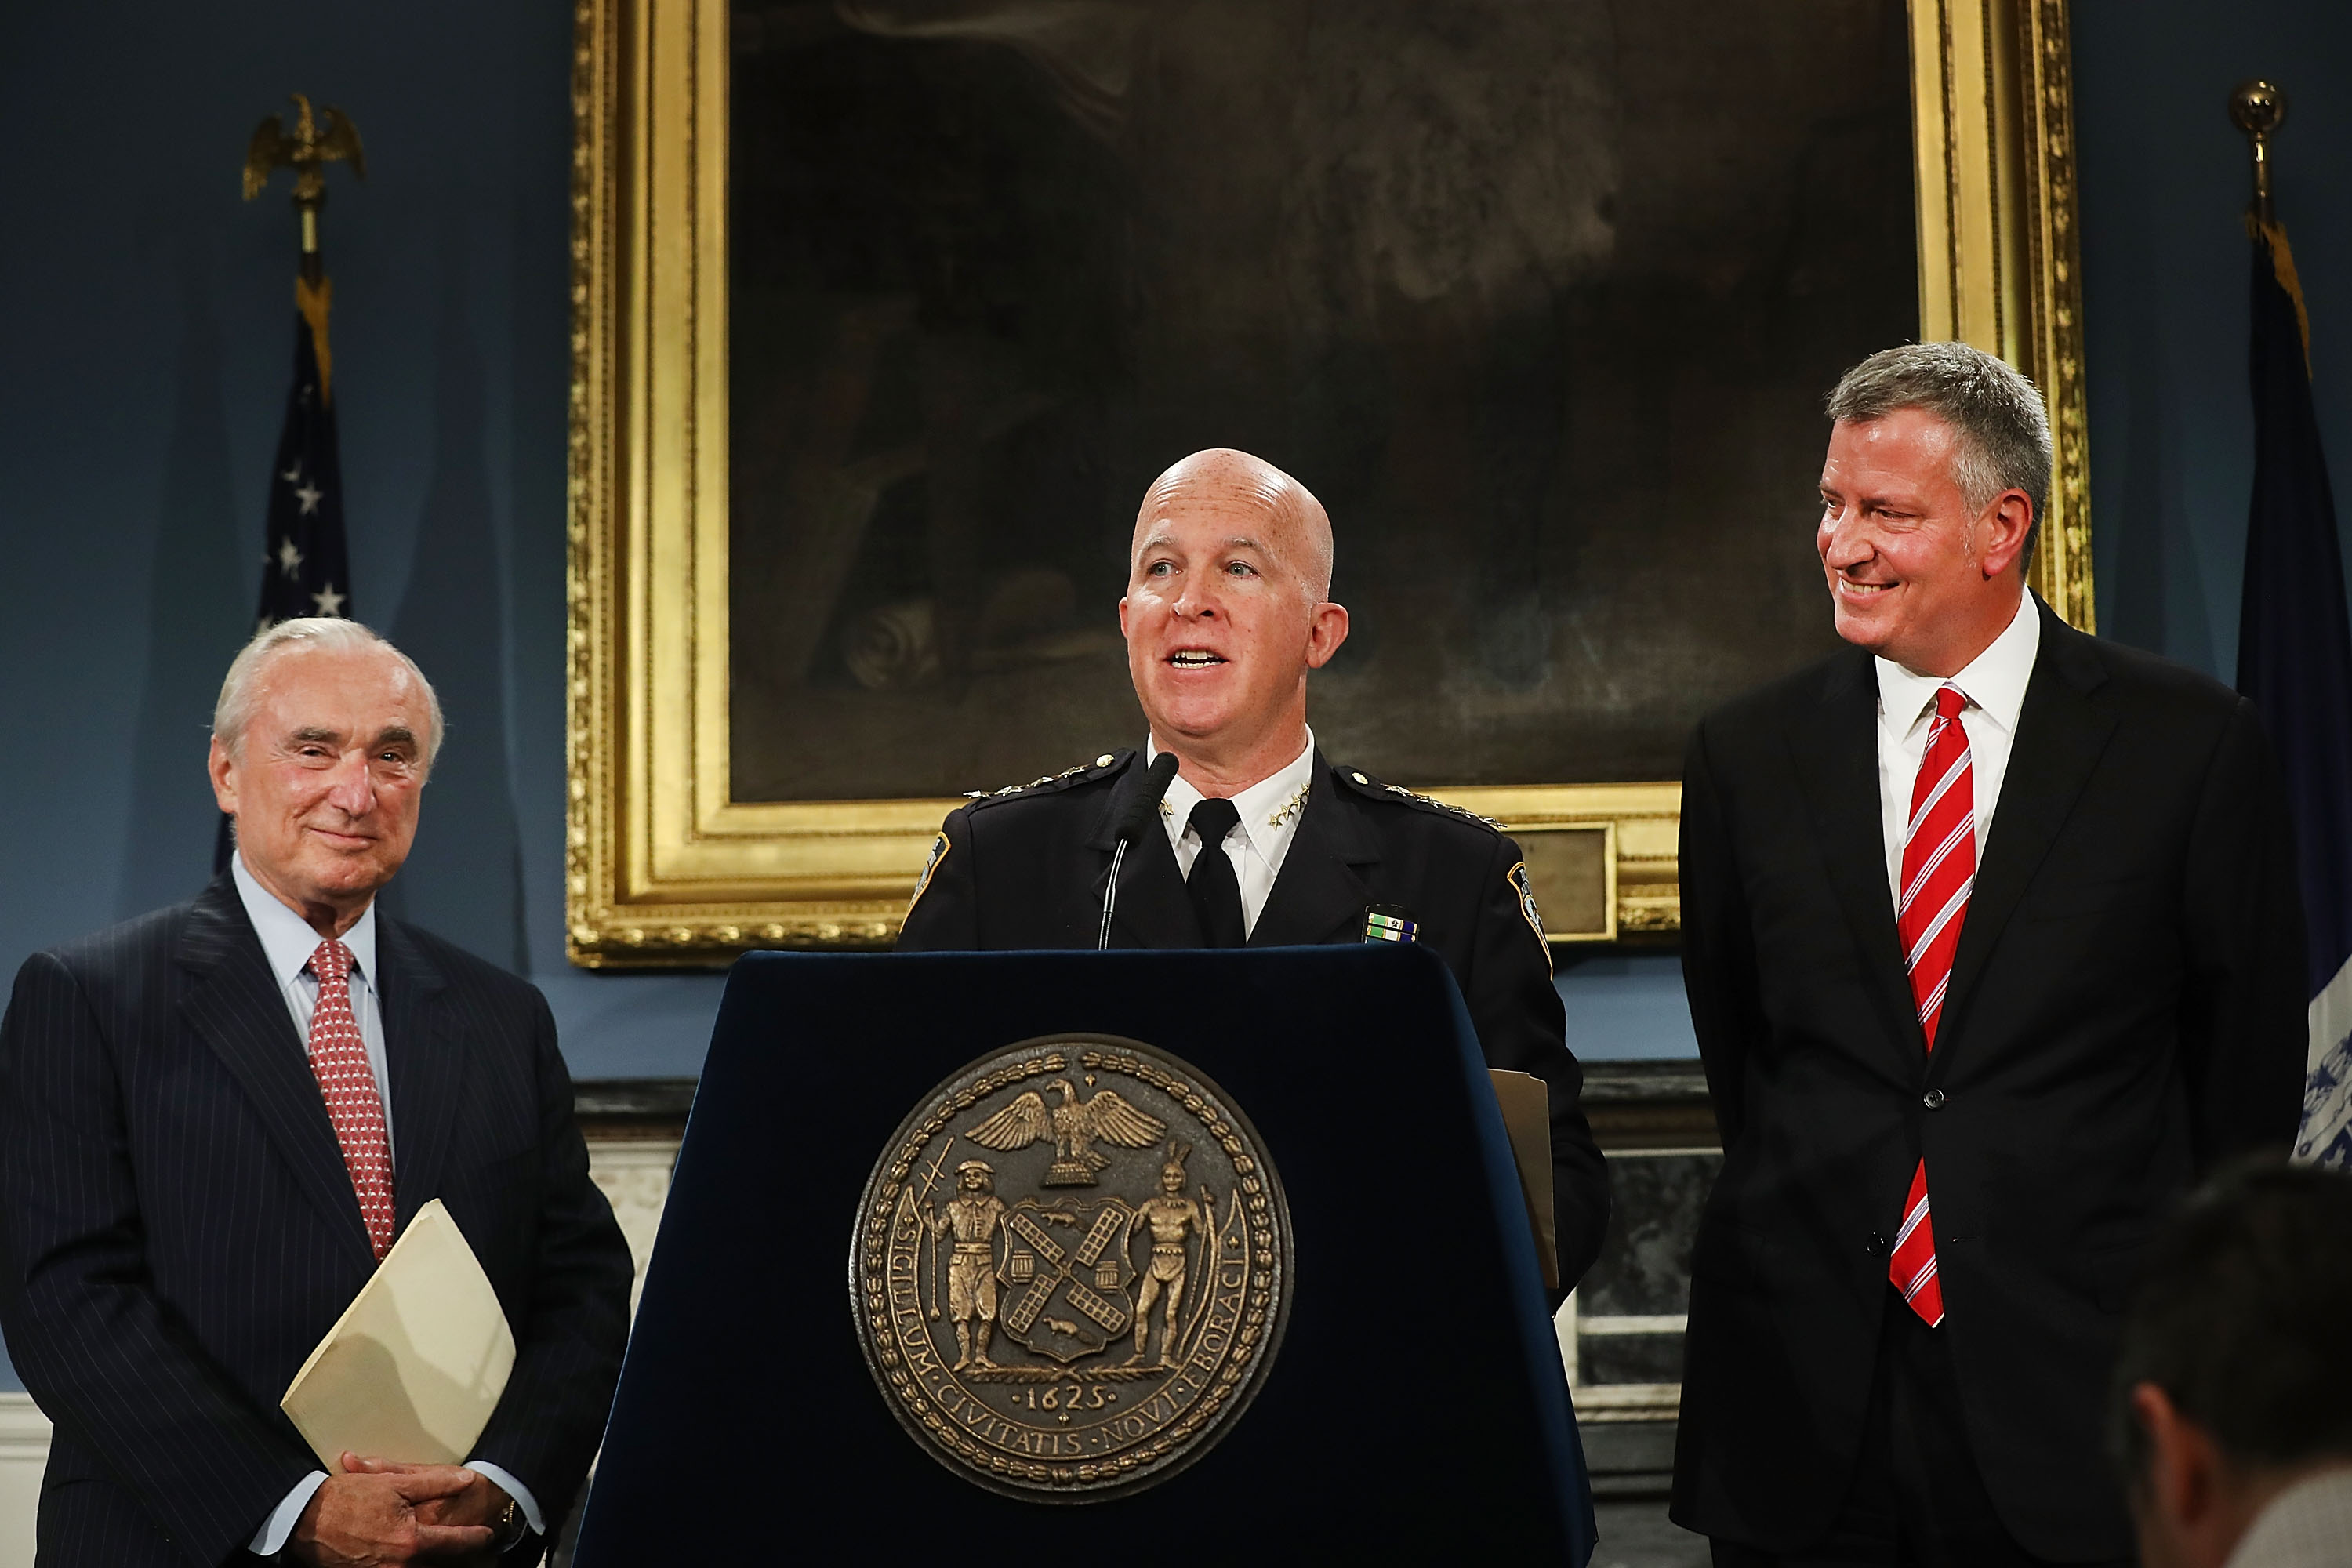 James O'Neill stands with former New York City Police Commissioner Bill Bratton (left) and Mayor Bill de Blasio at a news conference where it was announced that Bratton was stepping down and O'Neil would take over as Commissioner on August 2, 2016 in New York City.